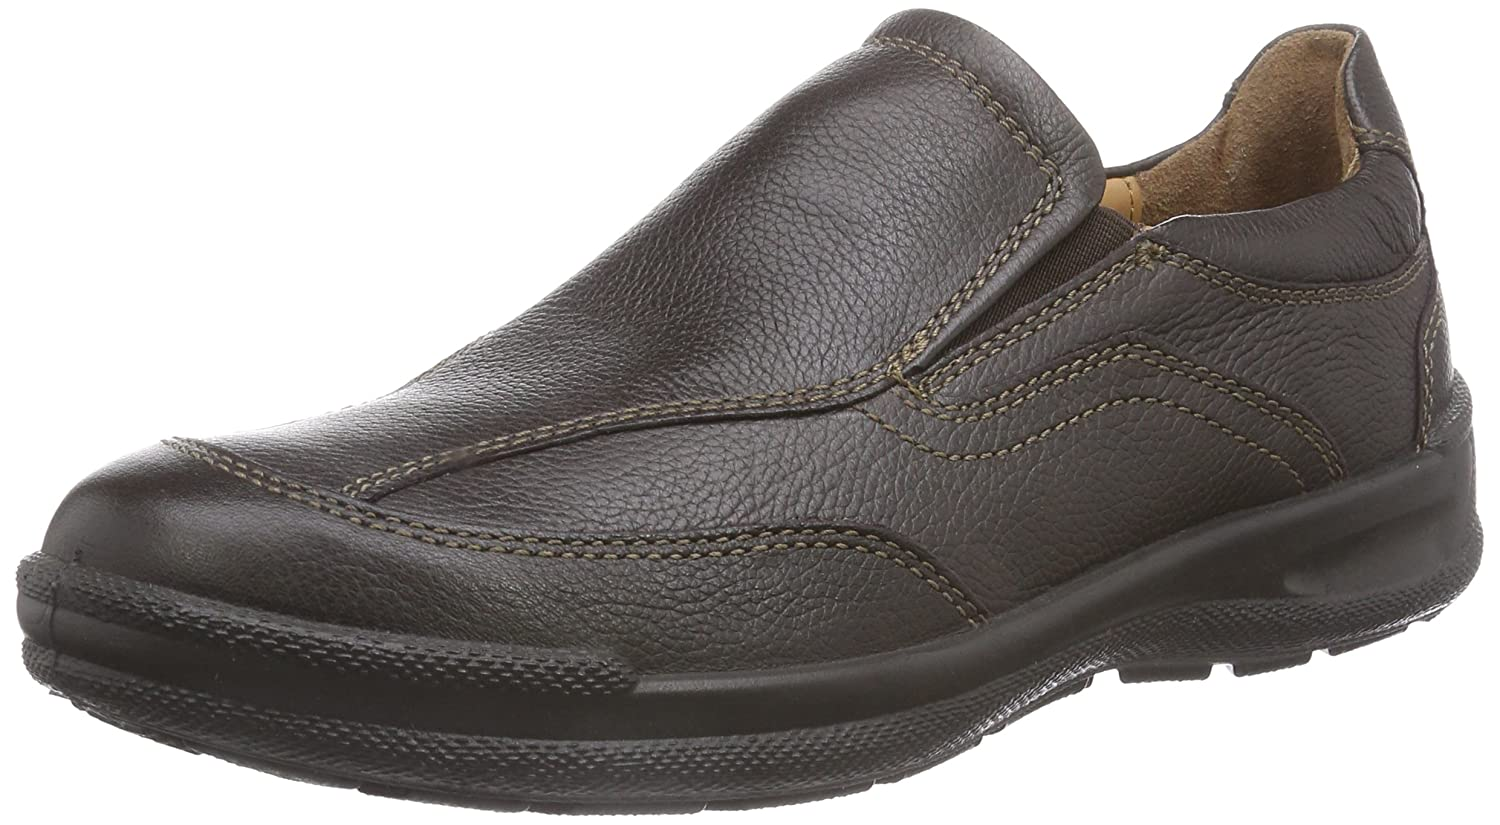 Marron - marron marron marron (Santos 37-370) Jomos Man Life, Chaussons Homme 597